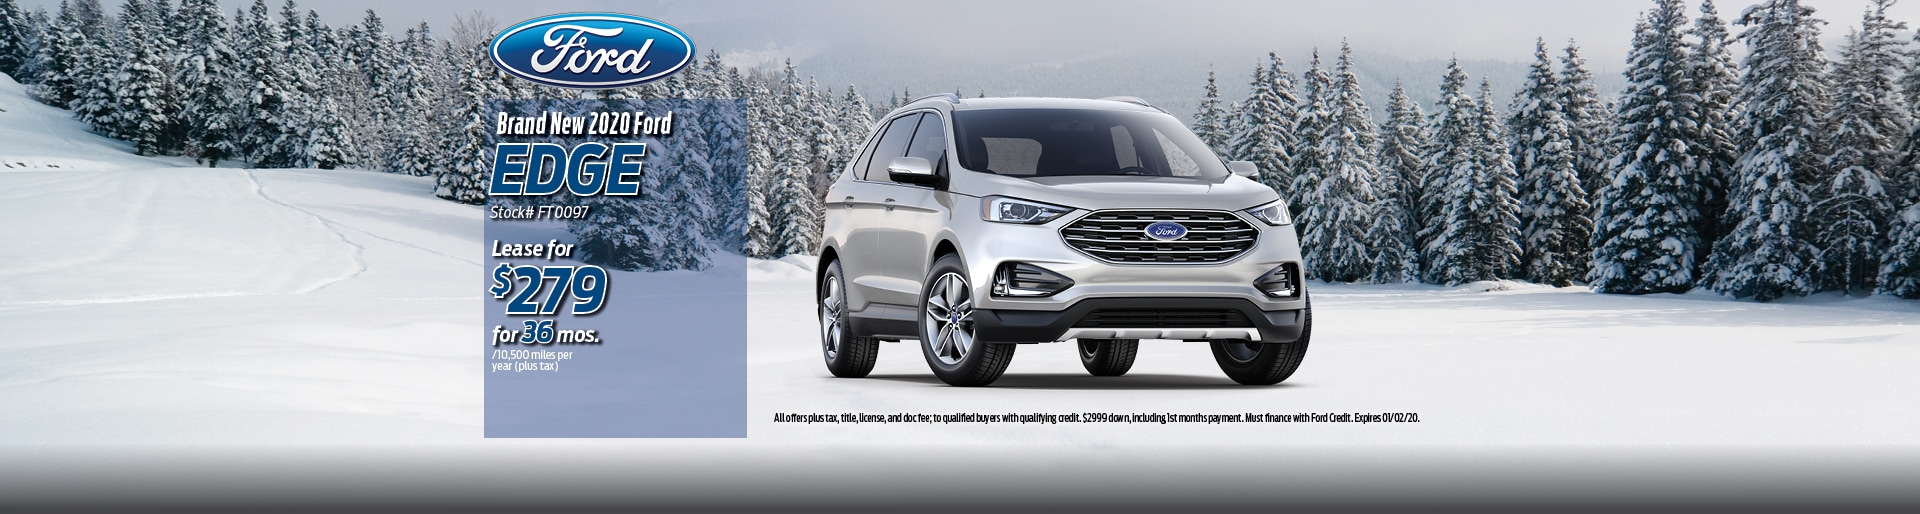 2019 Ford Edge Lease Deal